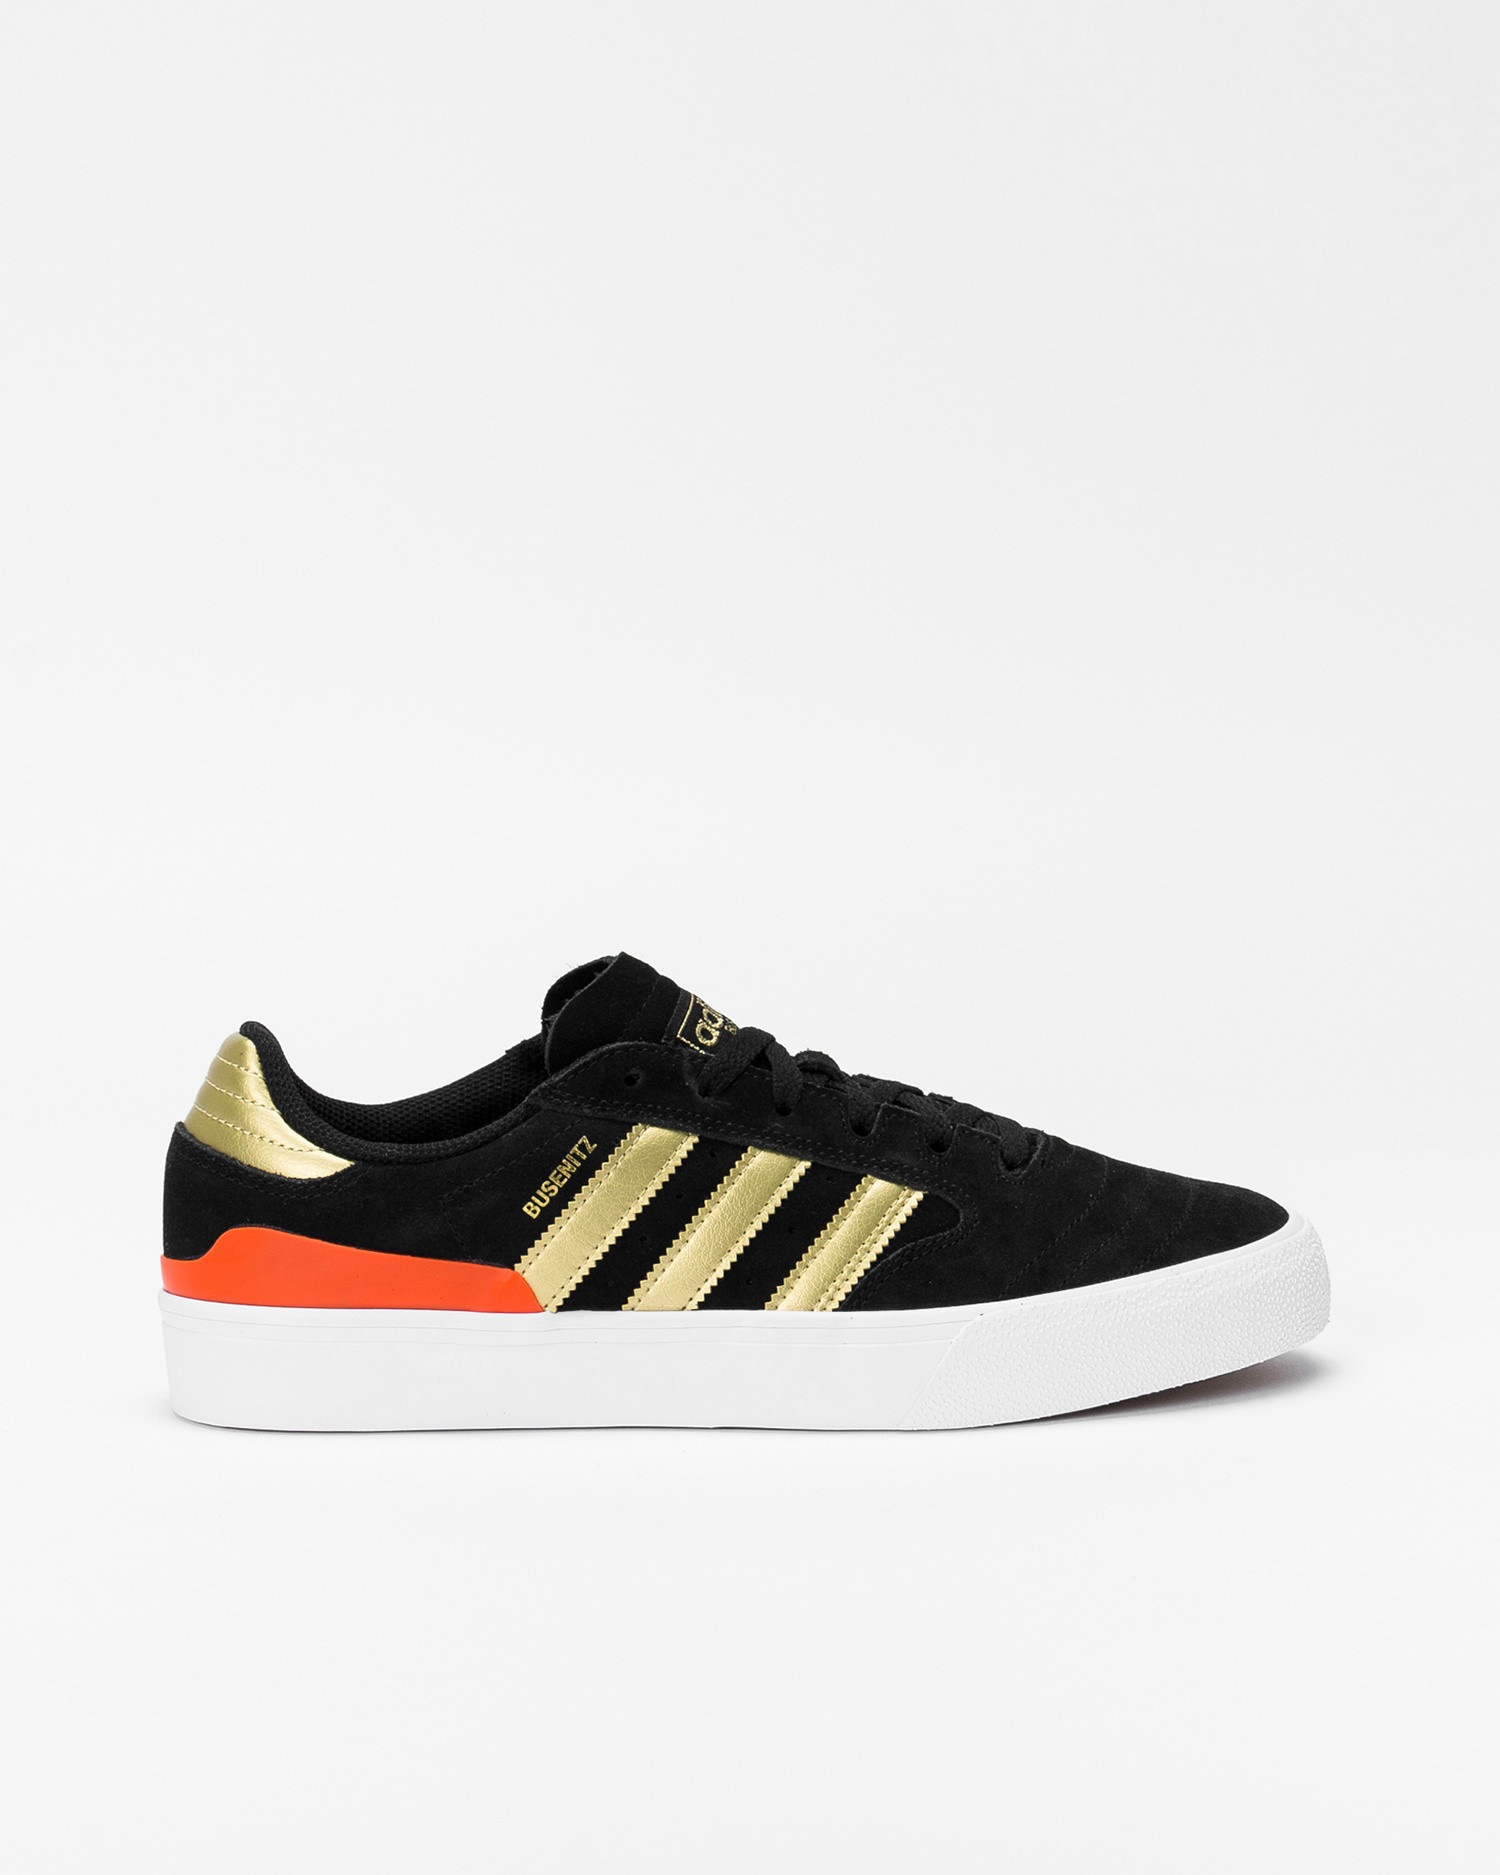 Adidas Busenitz Vulc II Core black/Gold metalic/Solar red